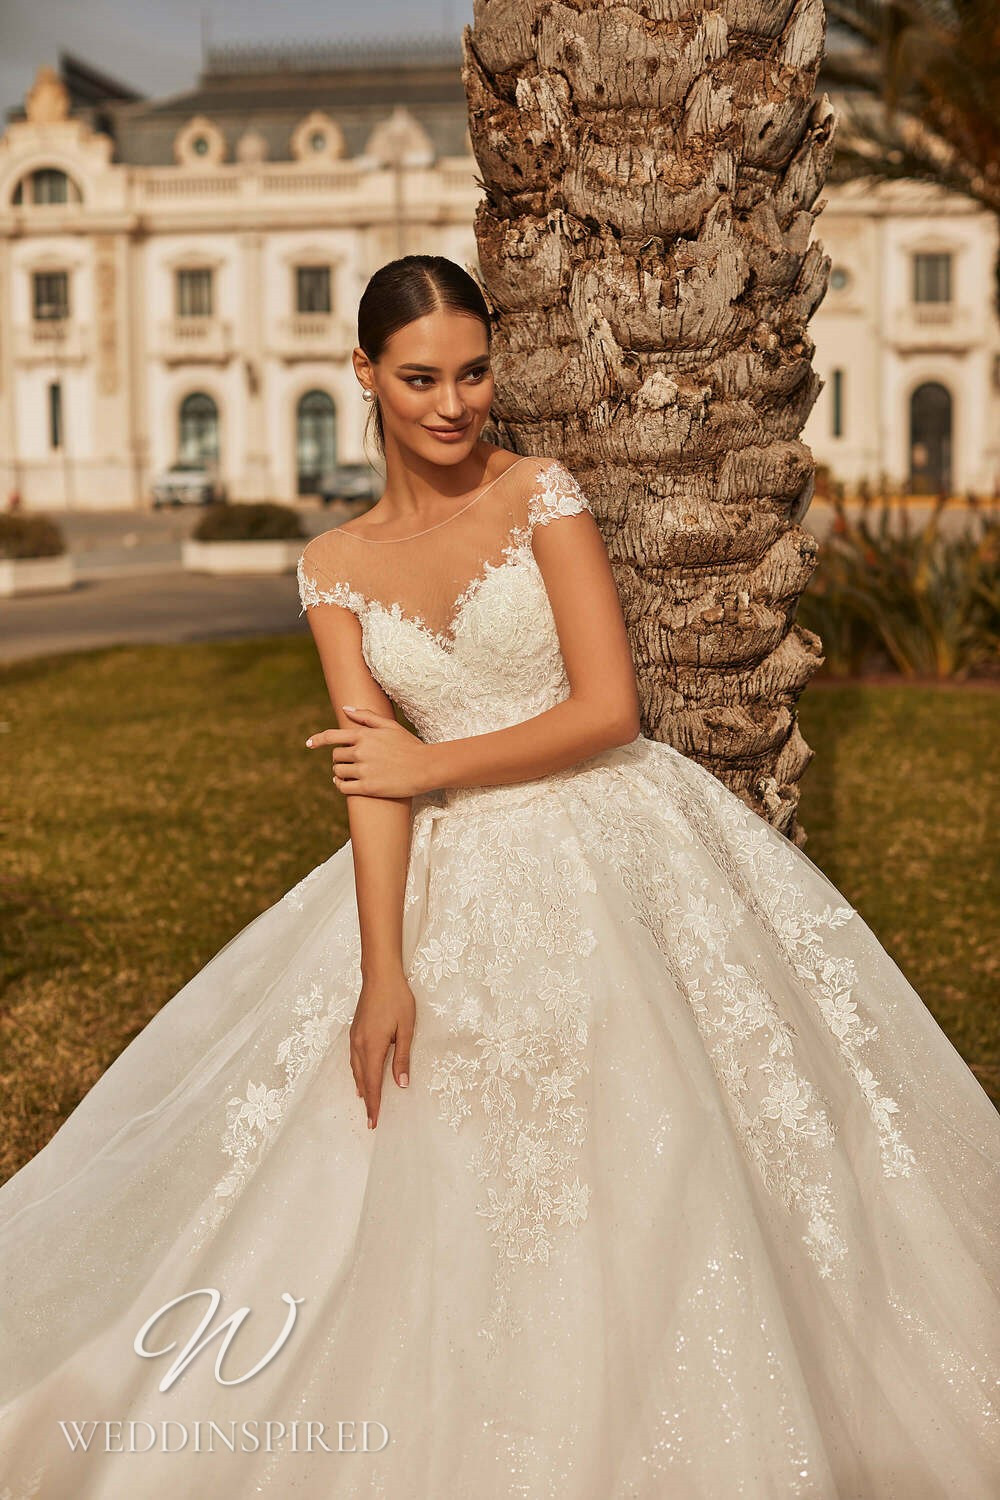 A Royal by Naviblue 2021 lace and tulle princess wedding dress